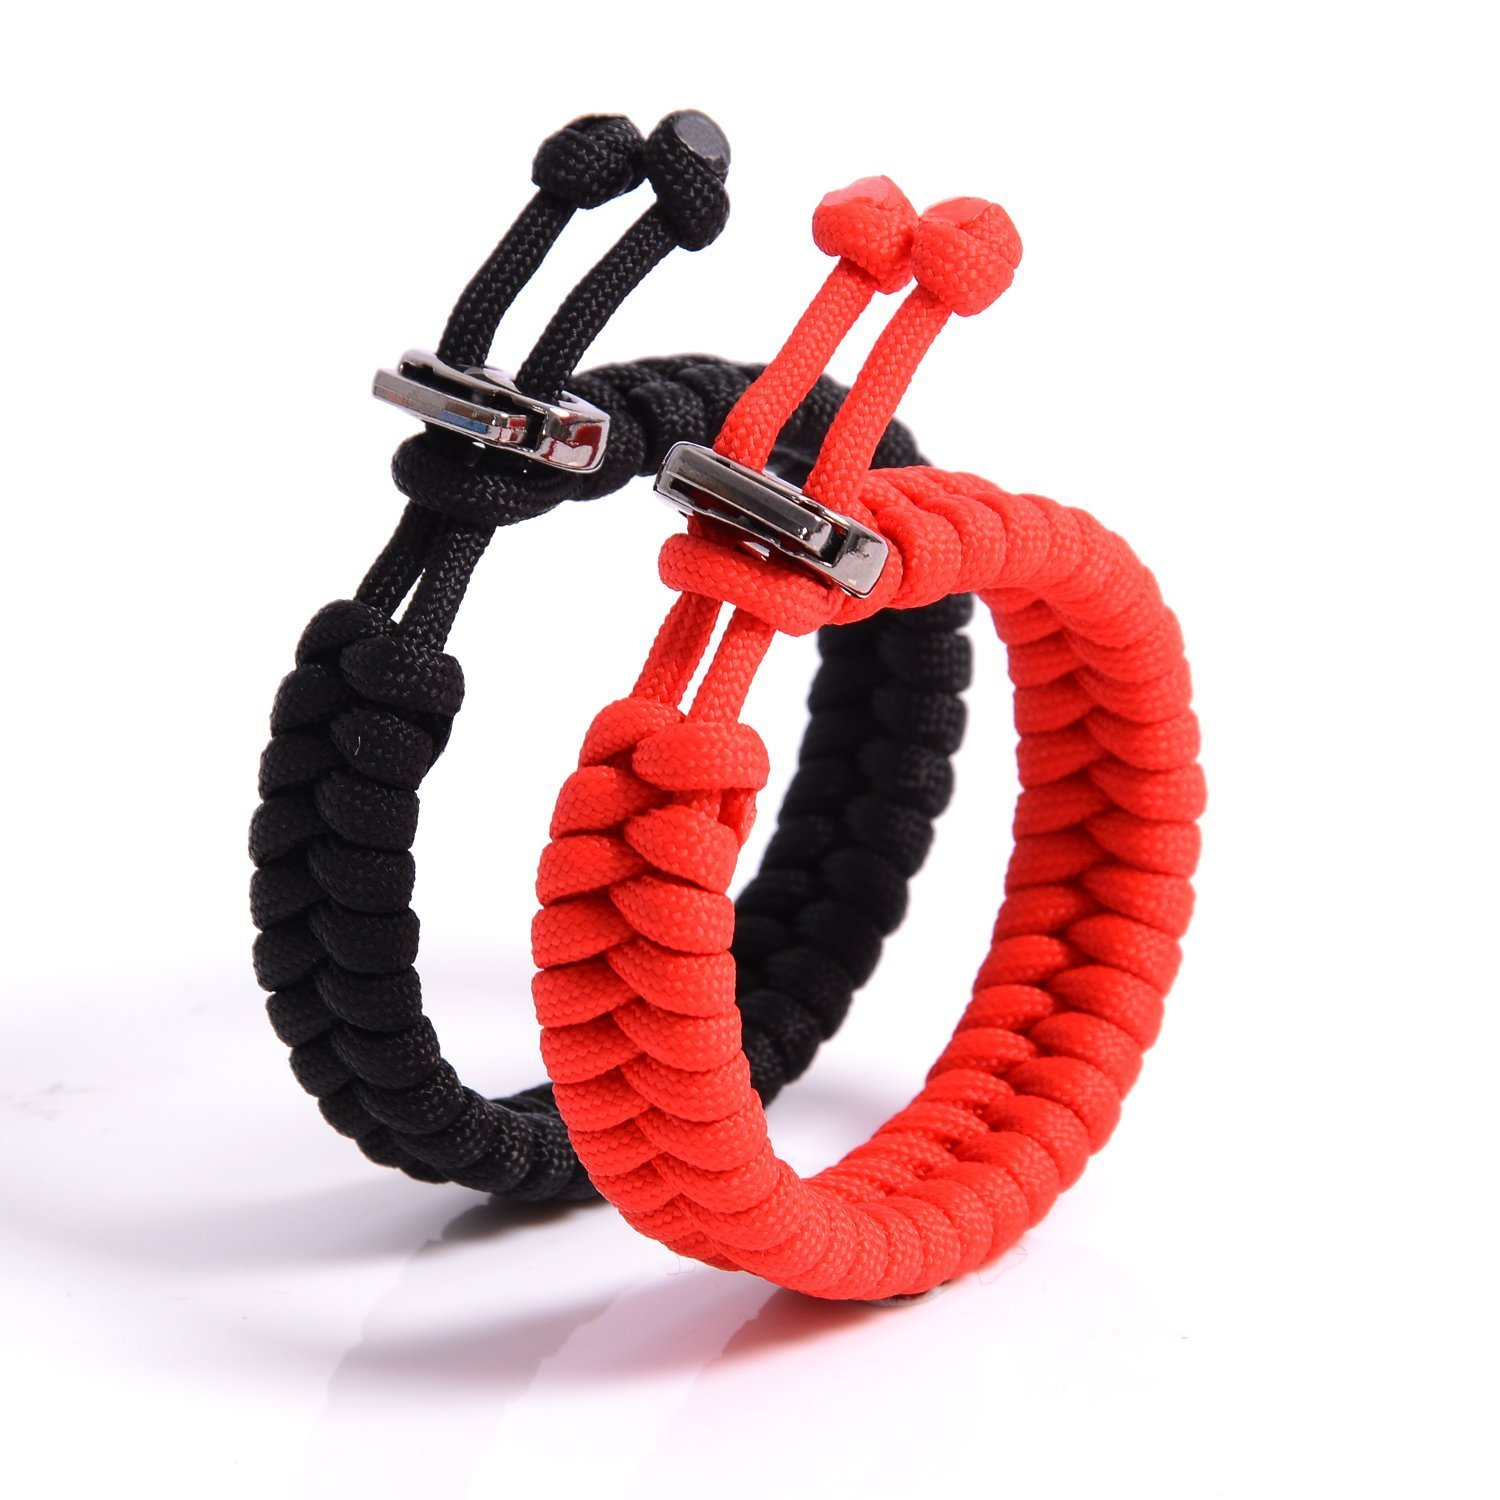 The Friendly Swede (TM) Bundle of 2 Premium Fish Tail 350 lb Paracord Bracelets With Metal Clasp - Adjustable Size Fits 7-8.5 Inch Wrist (Black + Red)